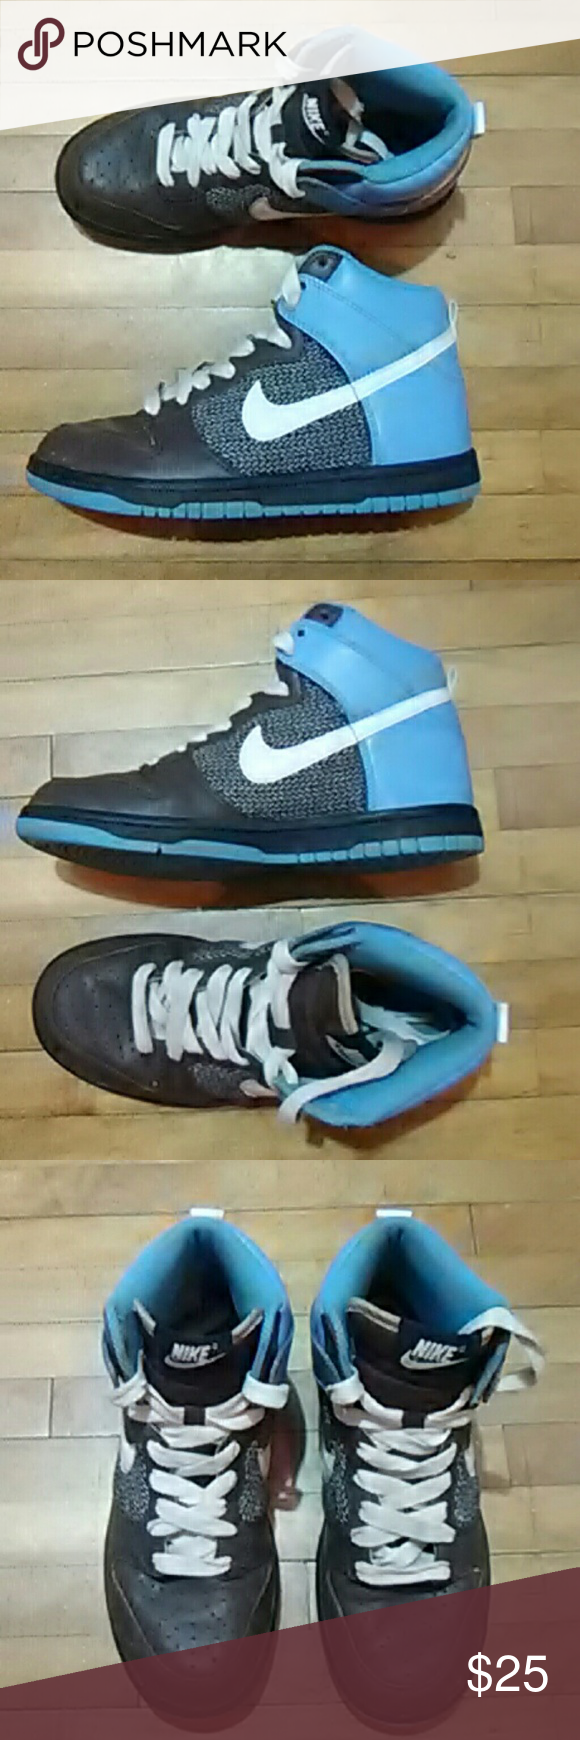 uk availability d25e3 bd1c0 Nike dunks Great condition Nike Dunk hi top. It blue with brown on the toe